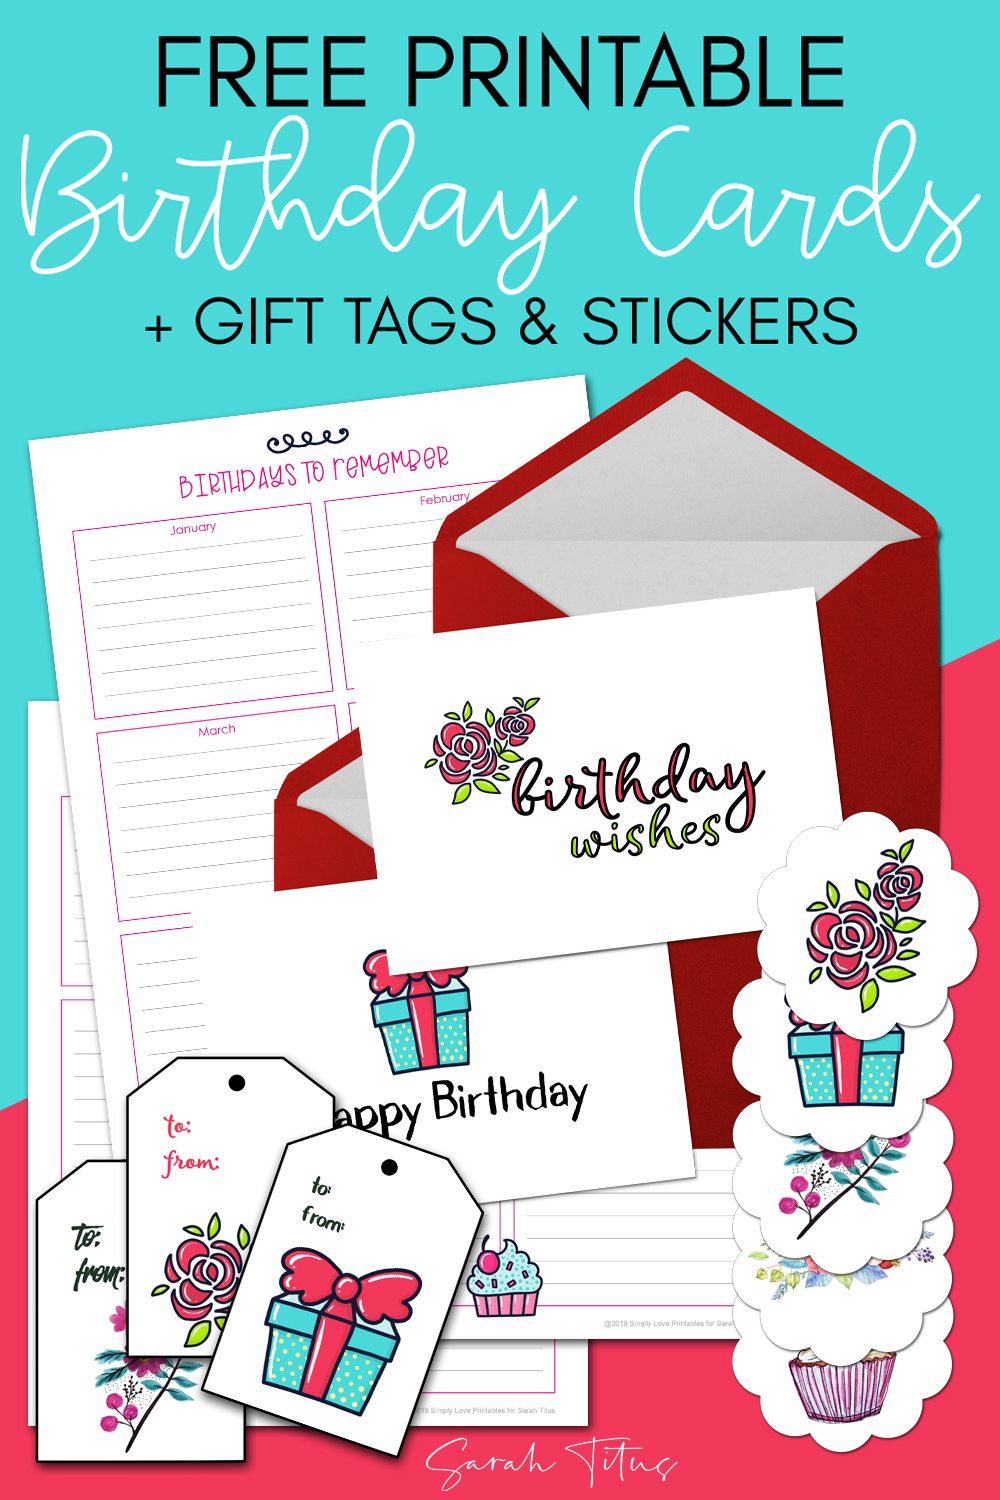 photo regarding Free Printable Stickers identify Free of charge Printable Birthday Playing cards + Reward Tags Stickers - Sarah